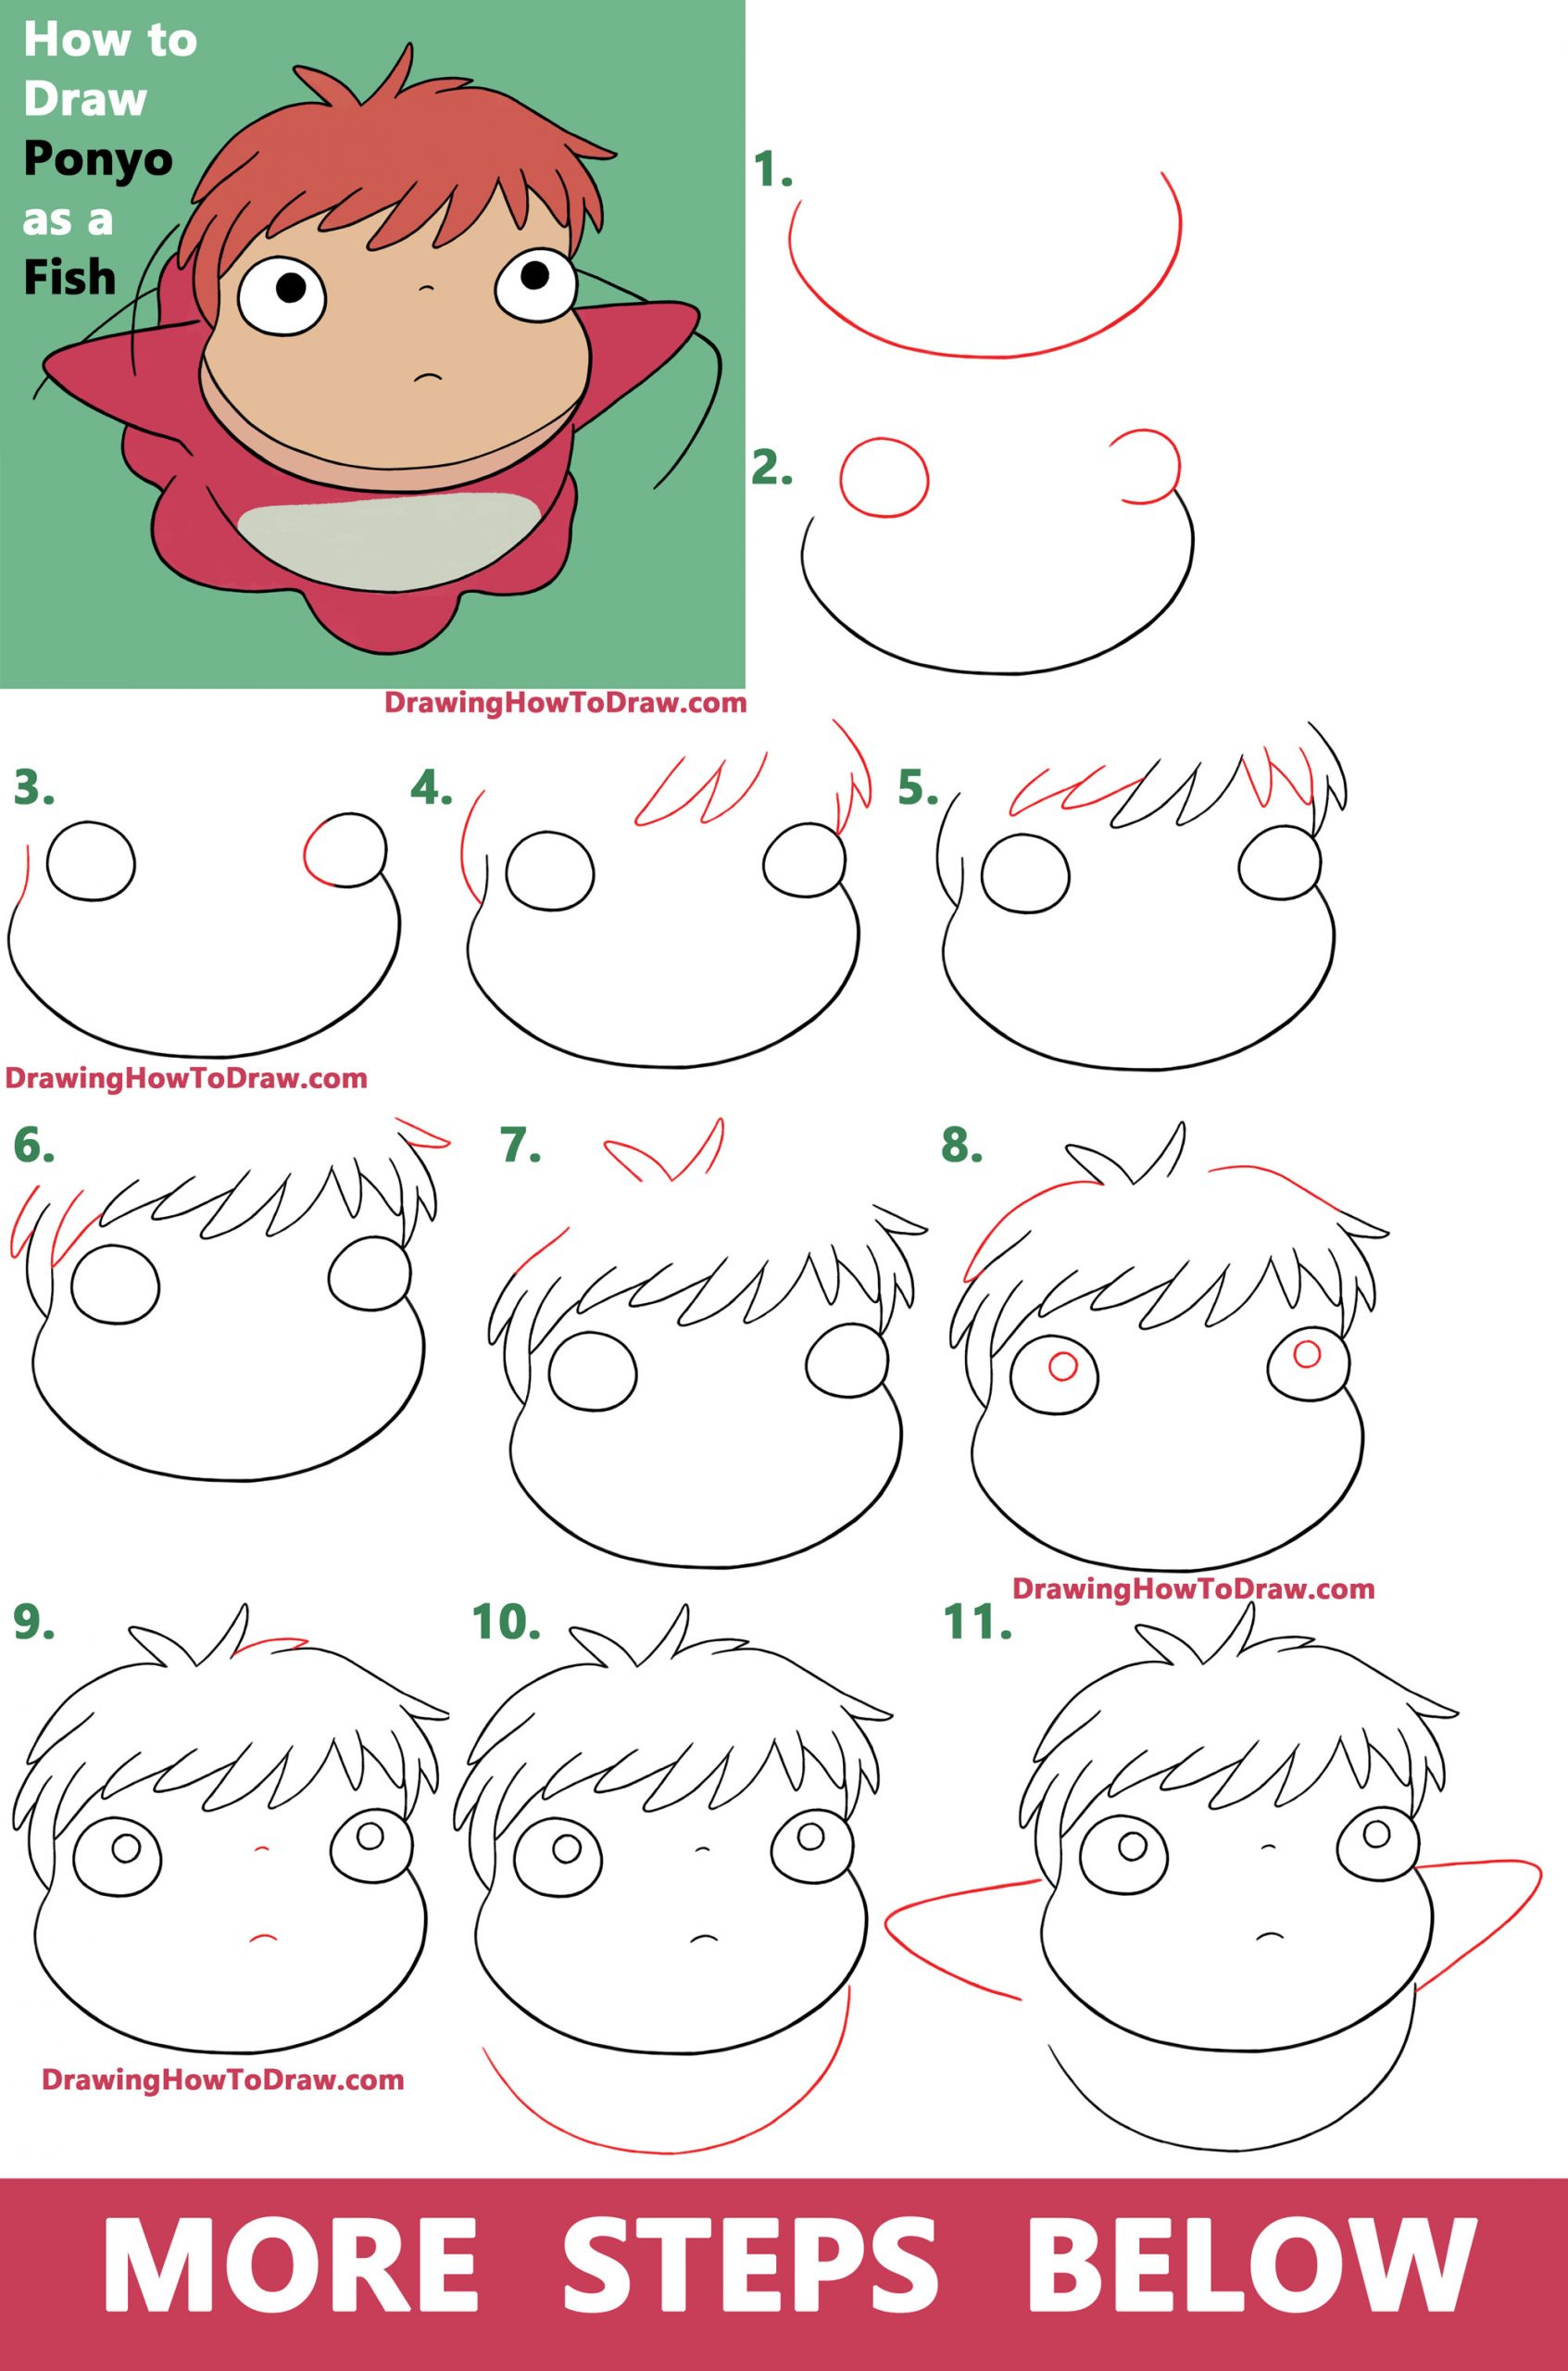 How to Draw Ponyo from Studio Ghibli - Easy Step by Step Drawing Tutorial